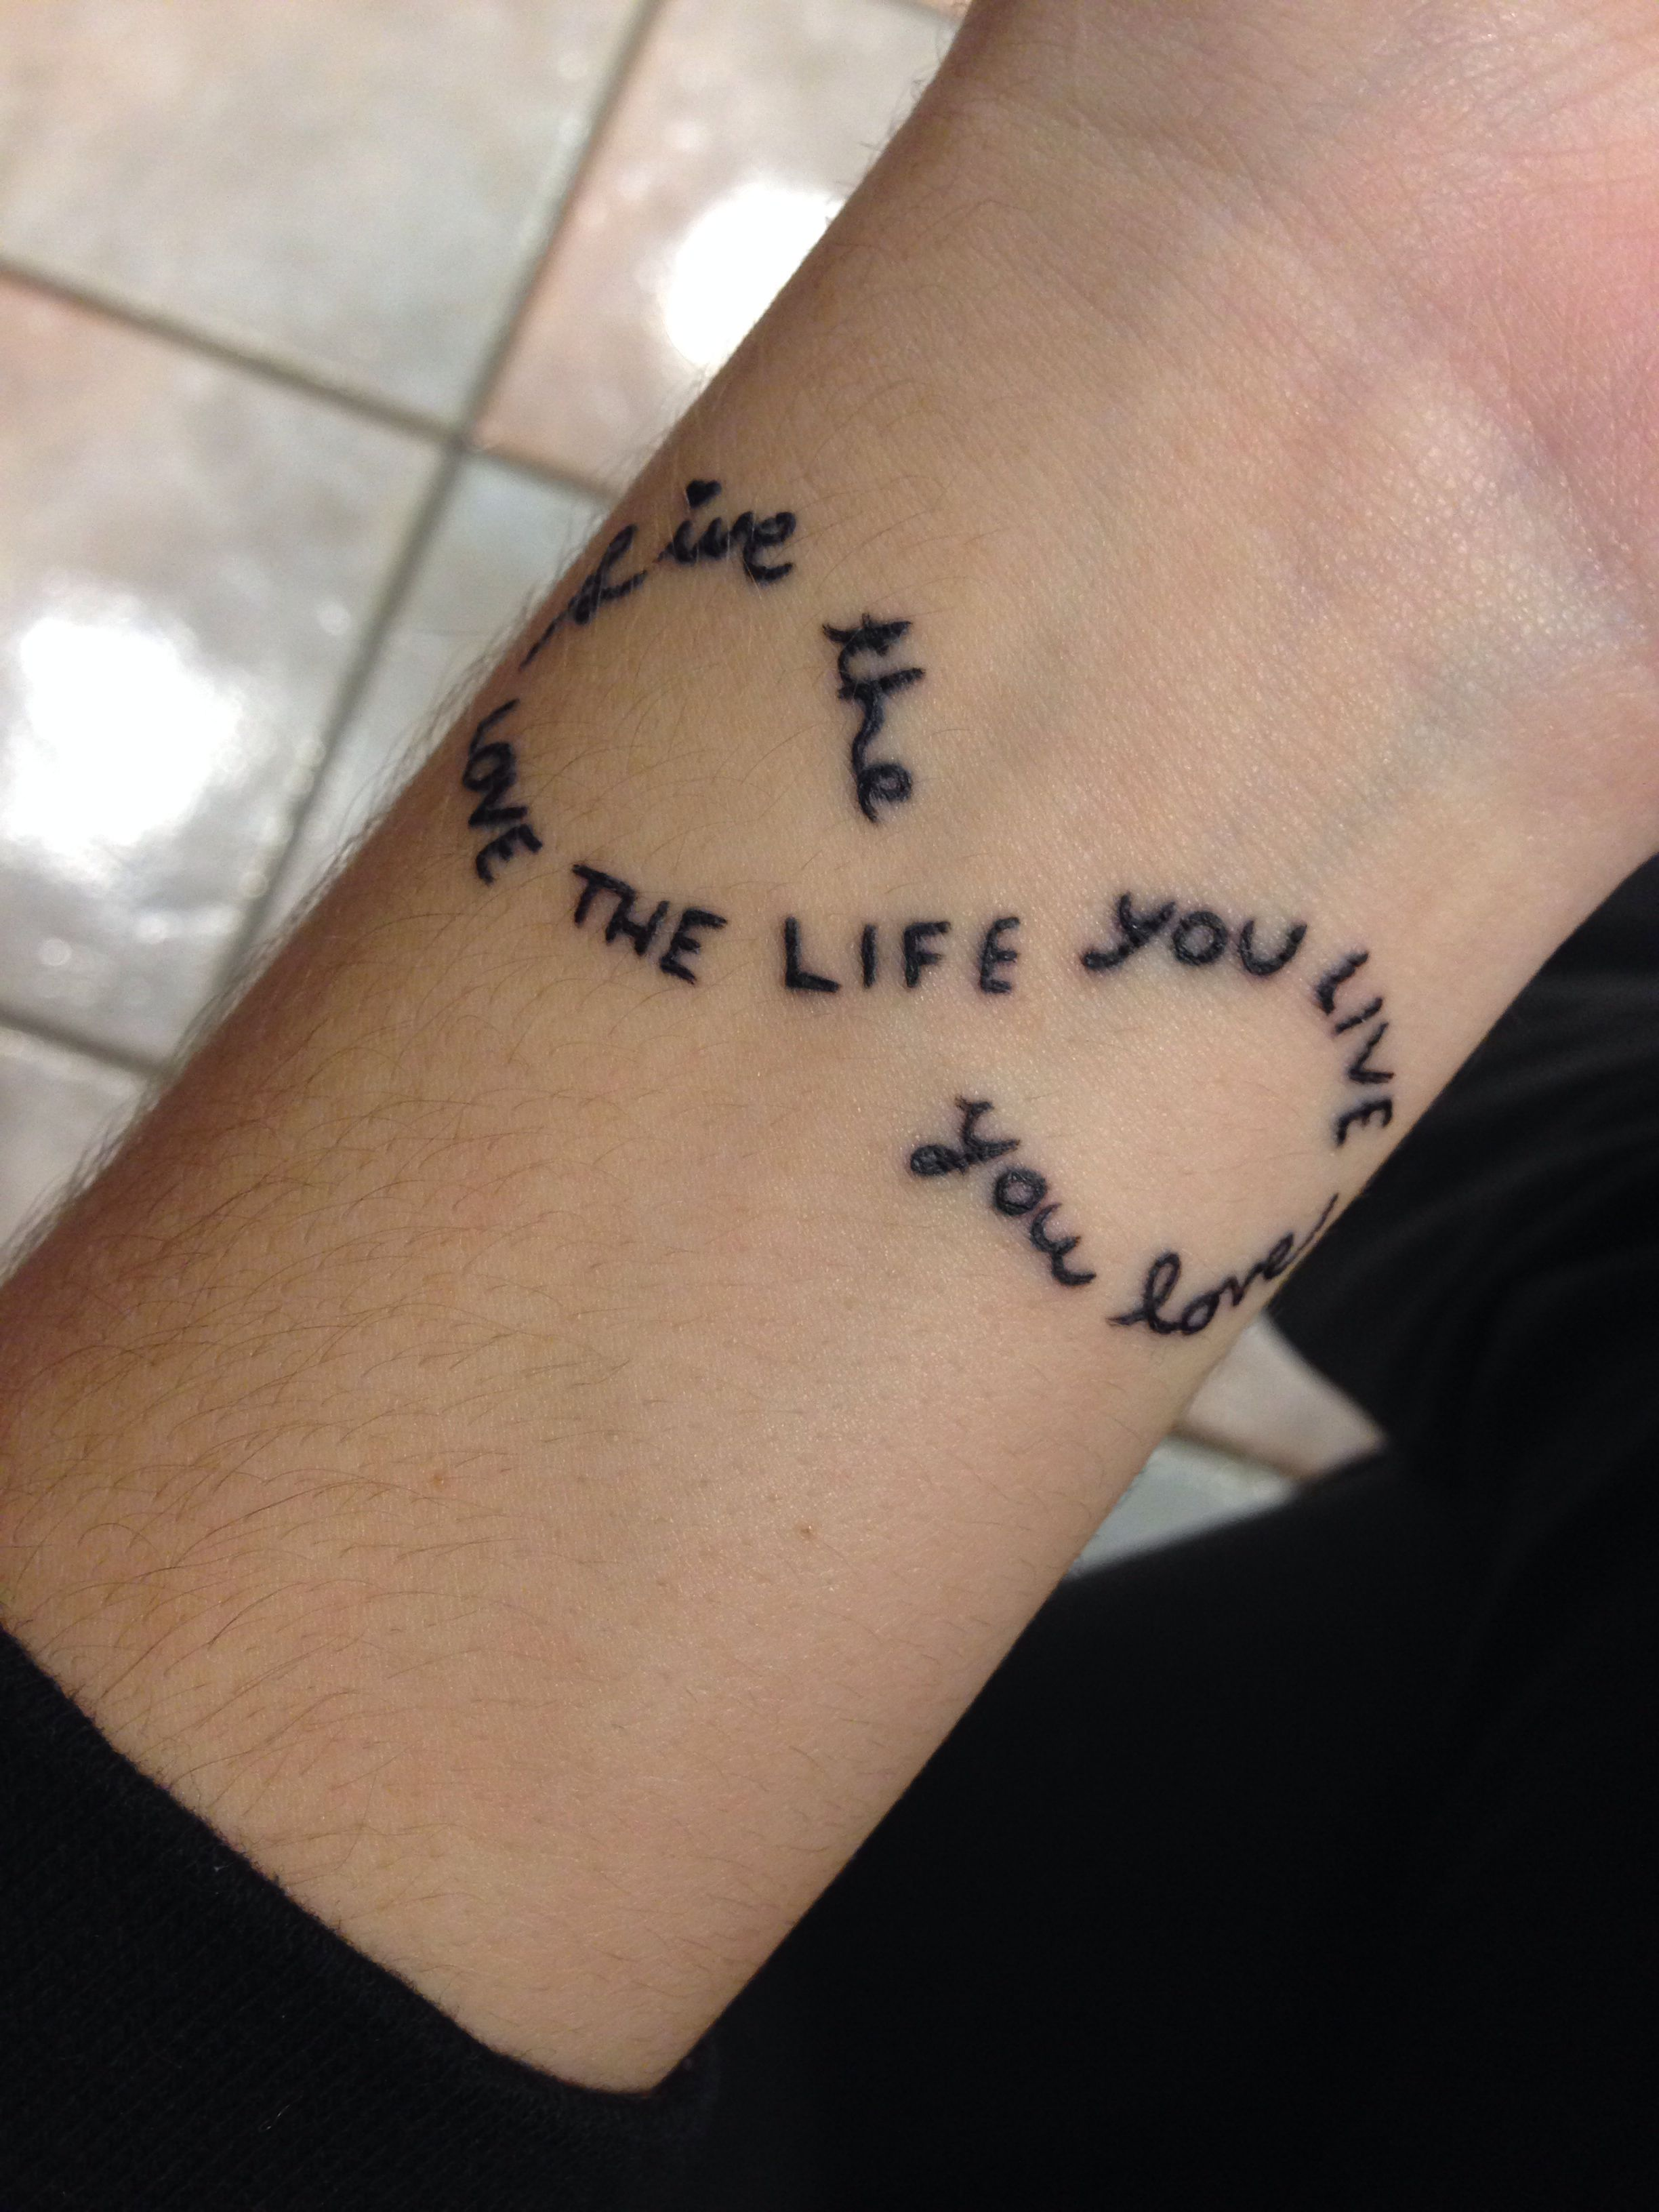 My Tattoo Turned Out Amazing Live The Life You Love Love The Life